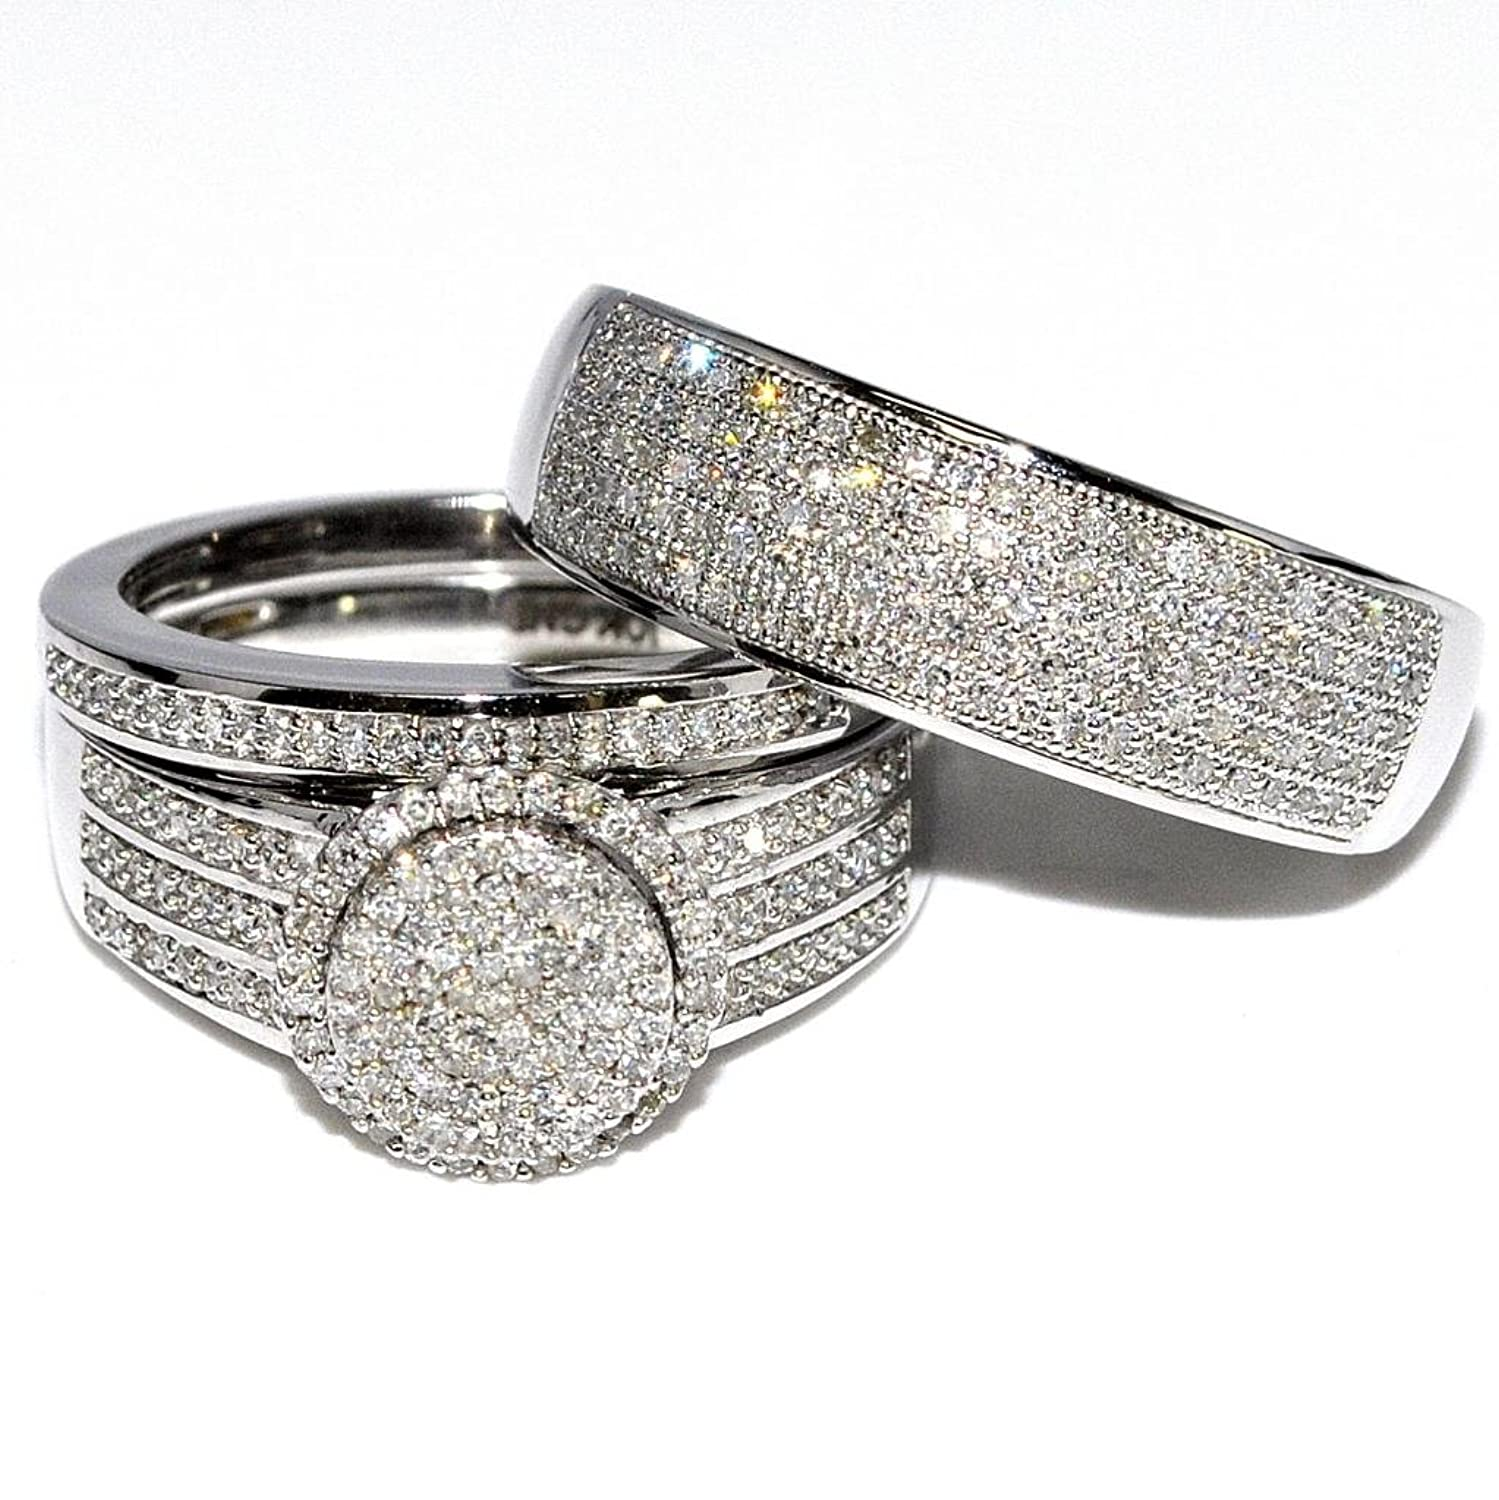 Amazon Rings MidwestJewellery His & Her 10k White Gold Halo